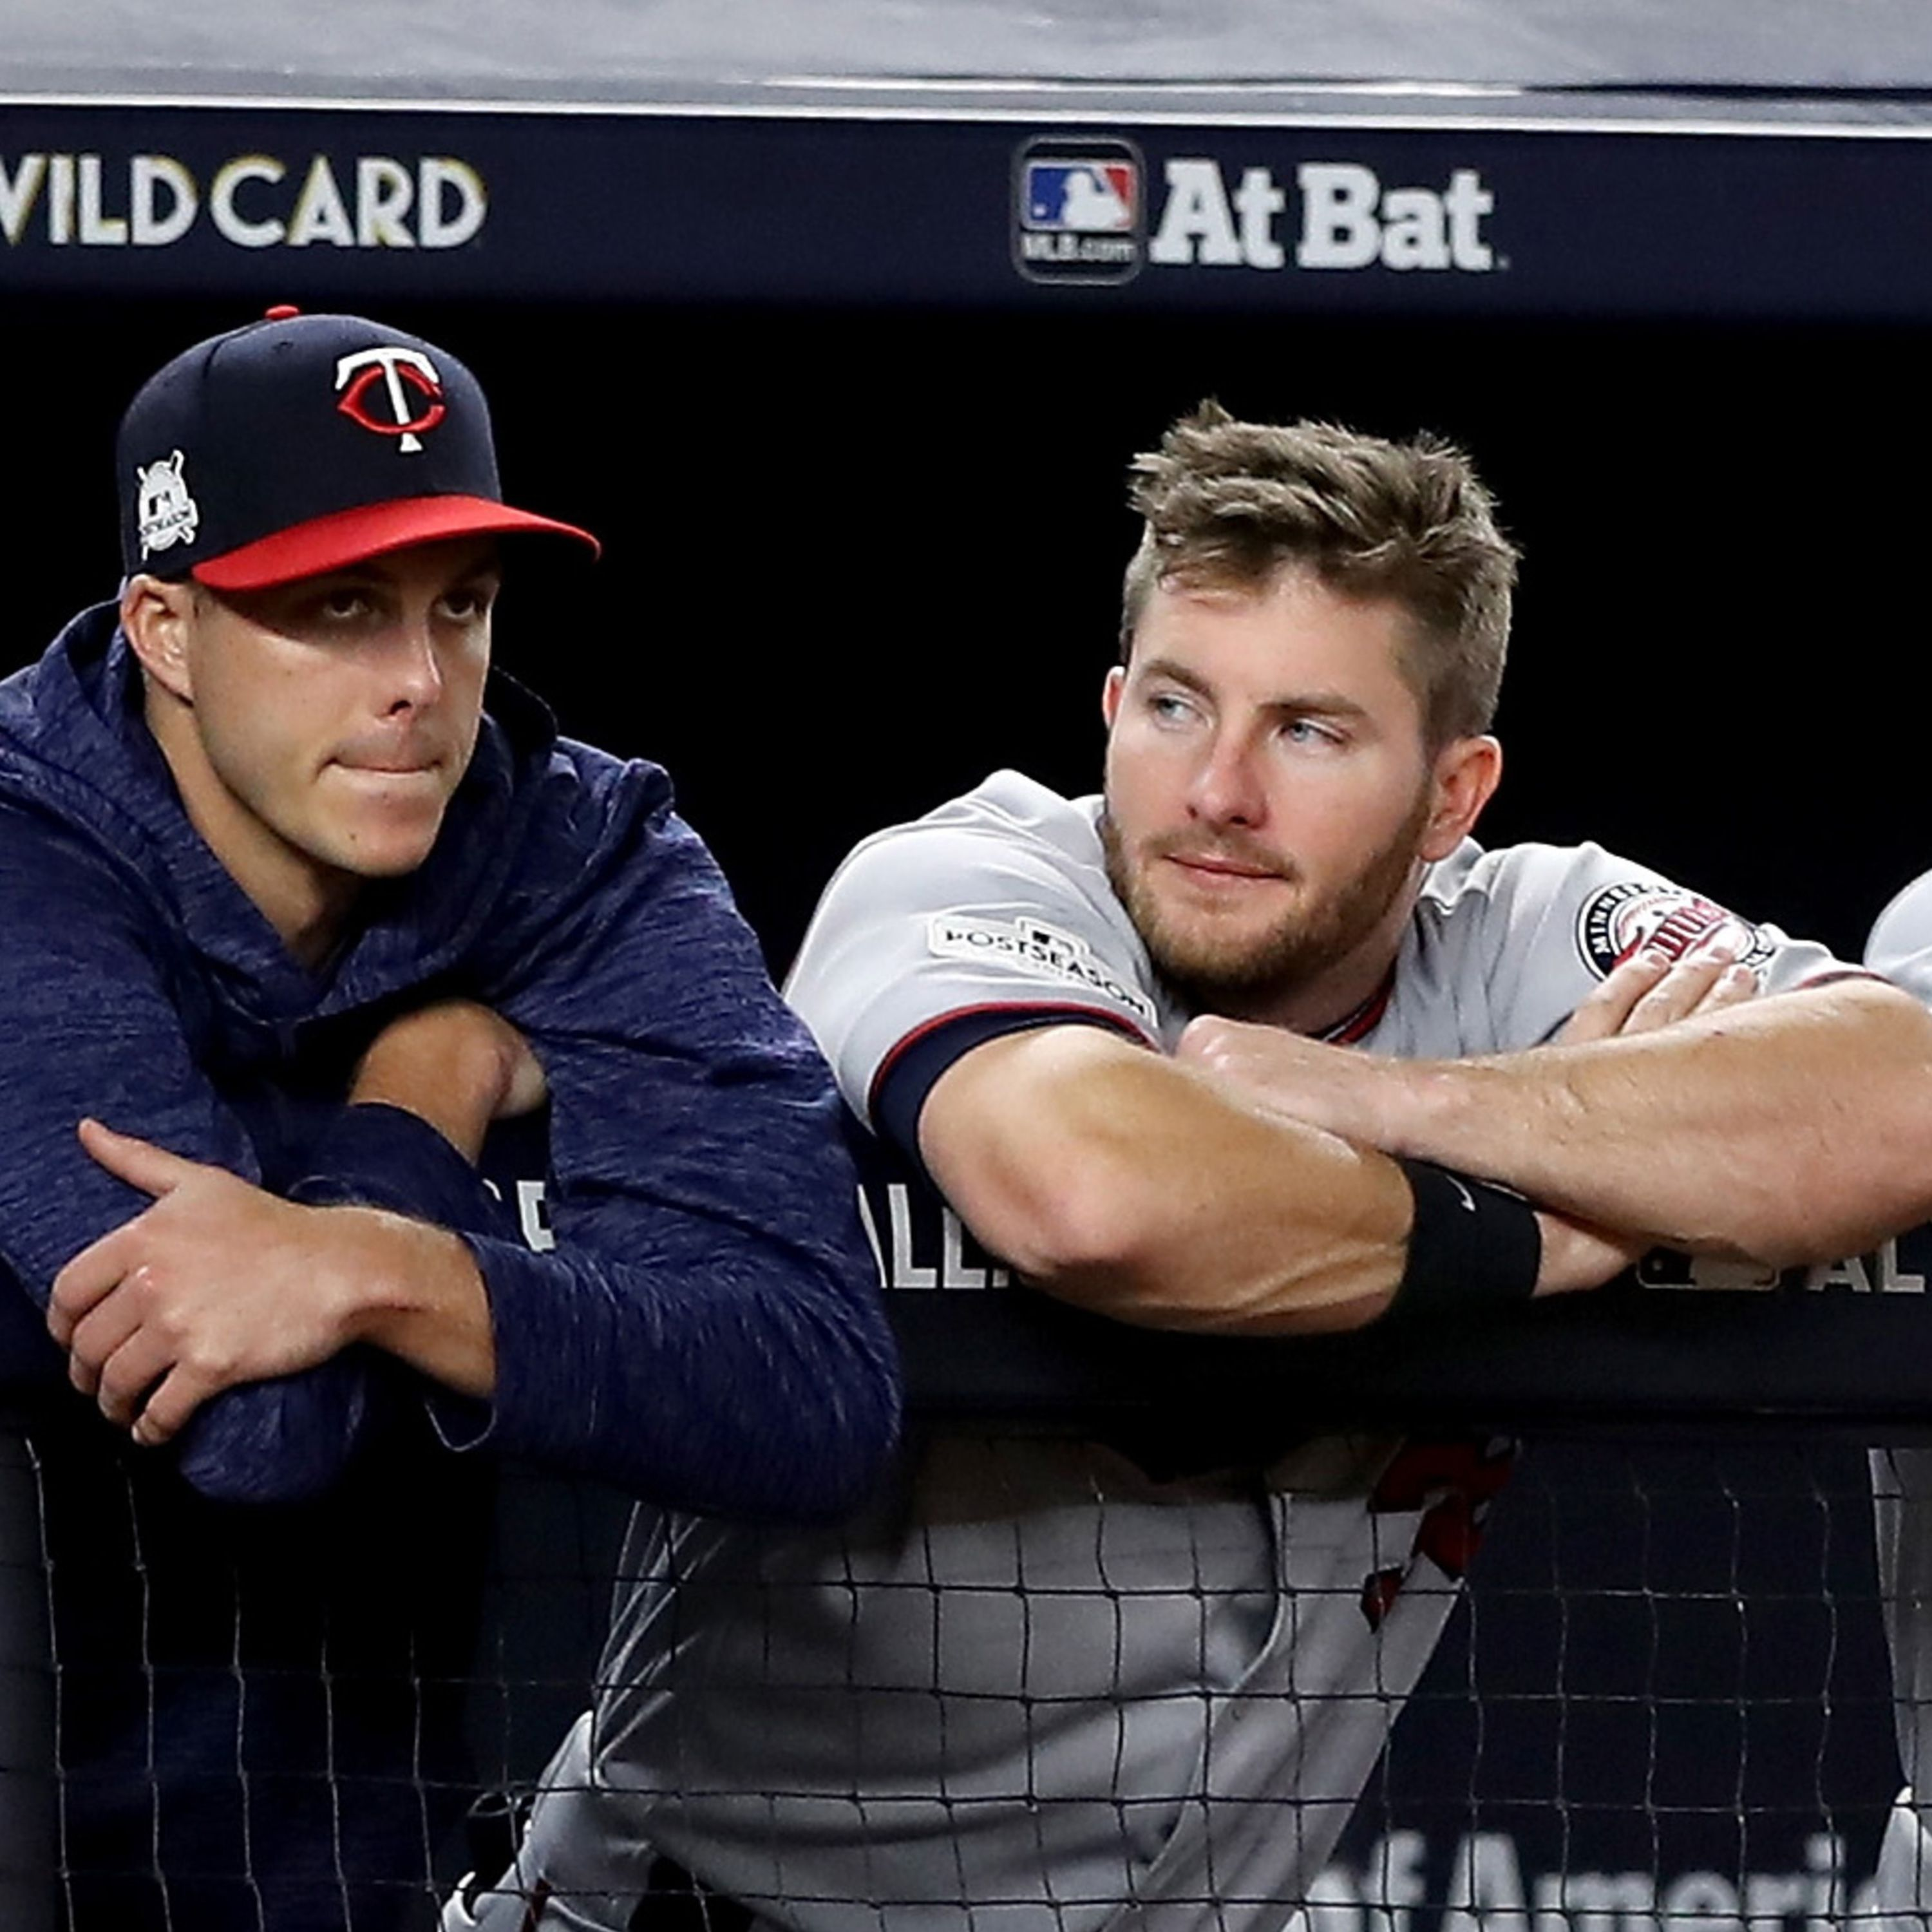 Ep. 68: The wild card game is killing baseball